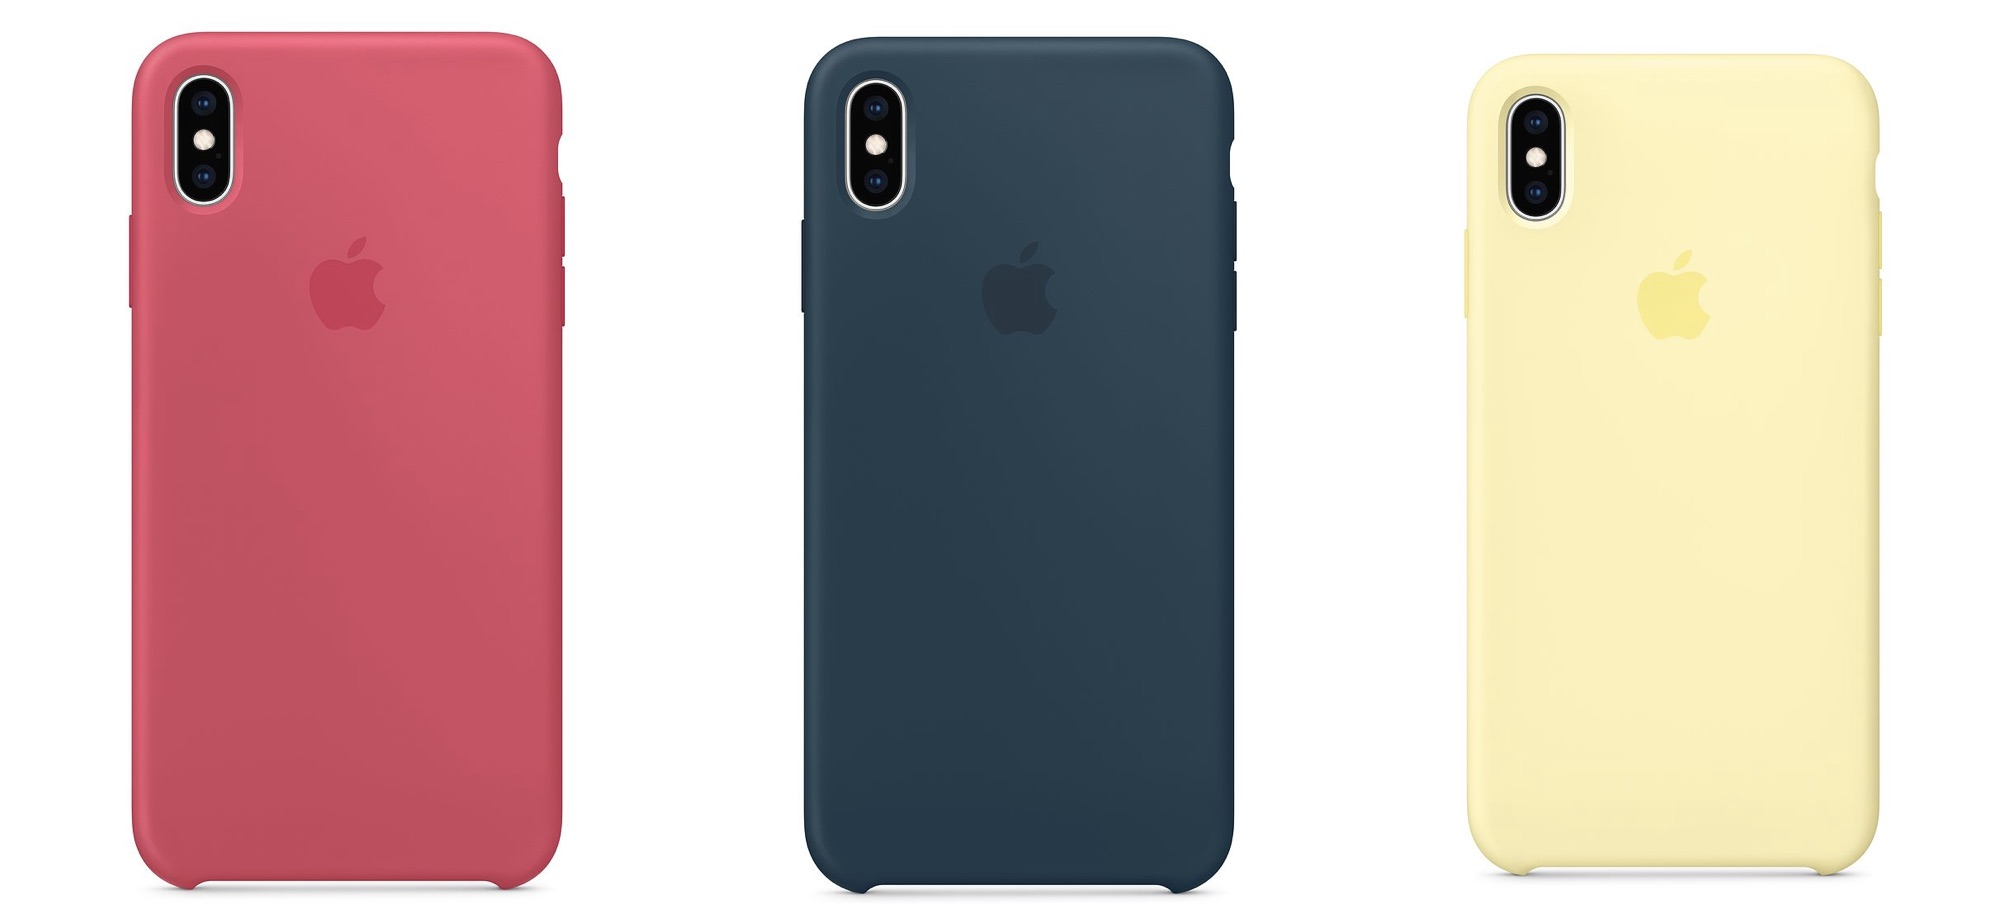 Apple releases new iPhone XS case and Apple Watch sport band colors, still no iPhone XR cases